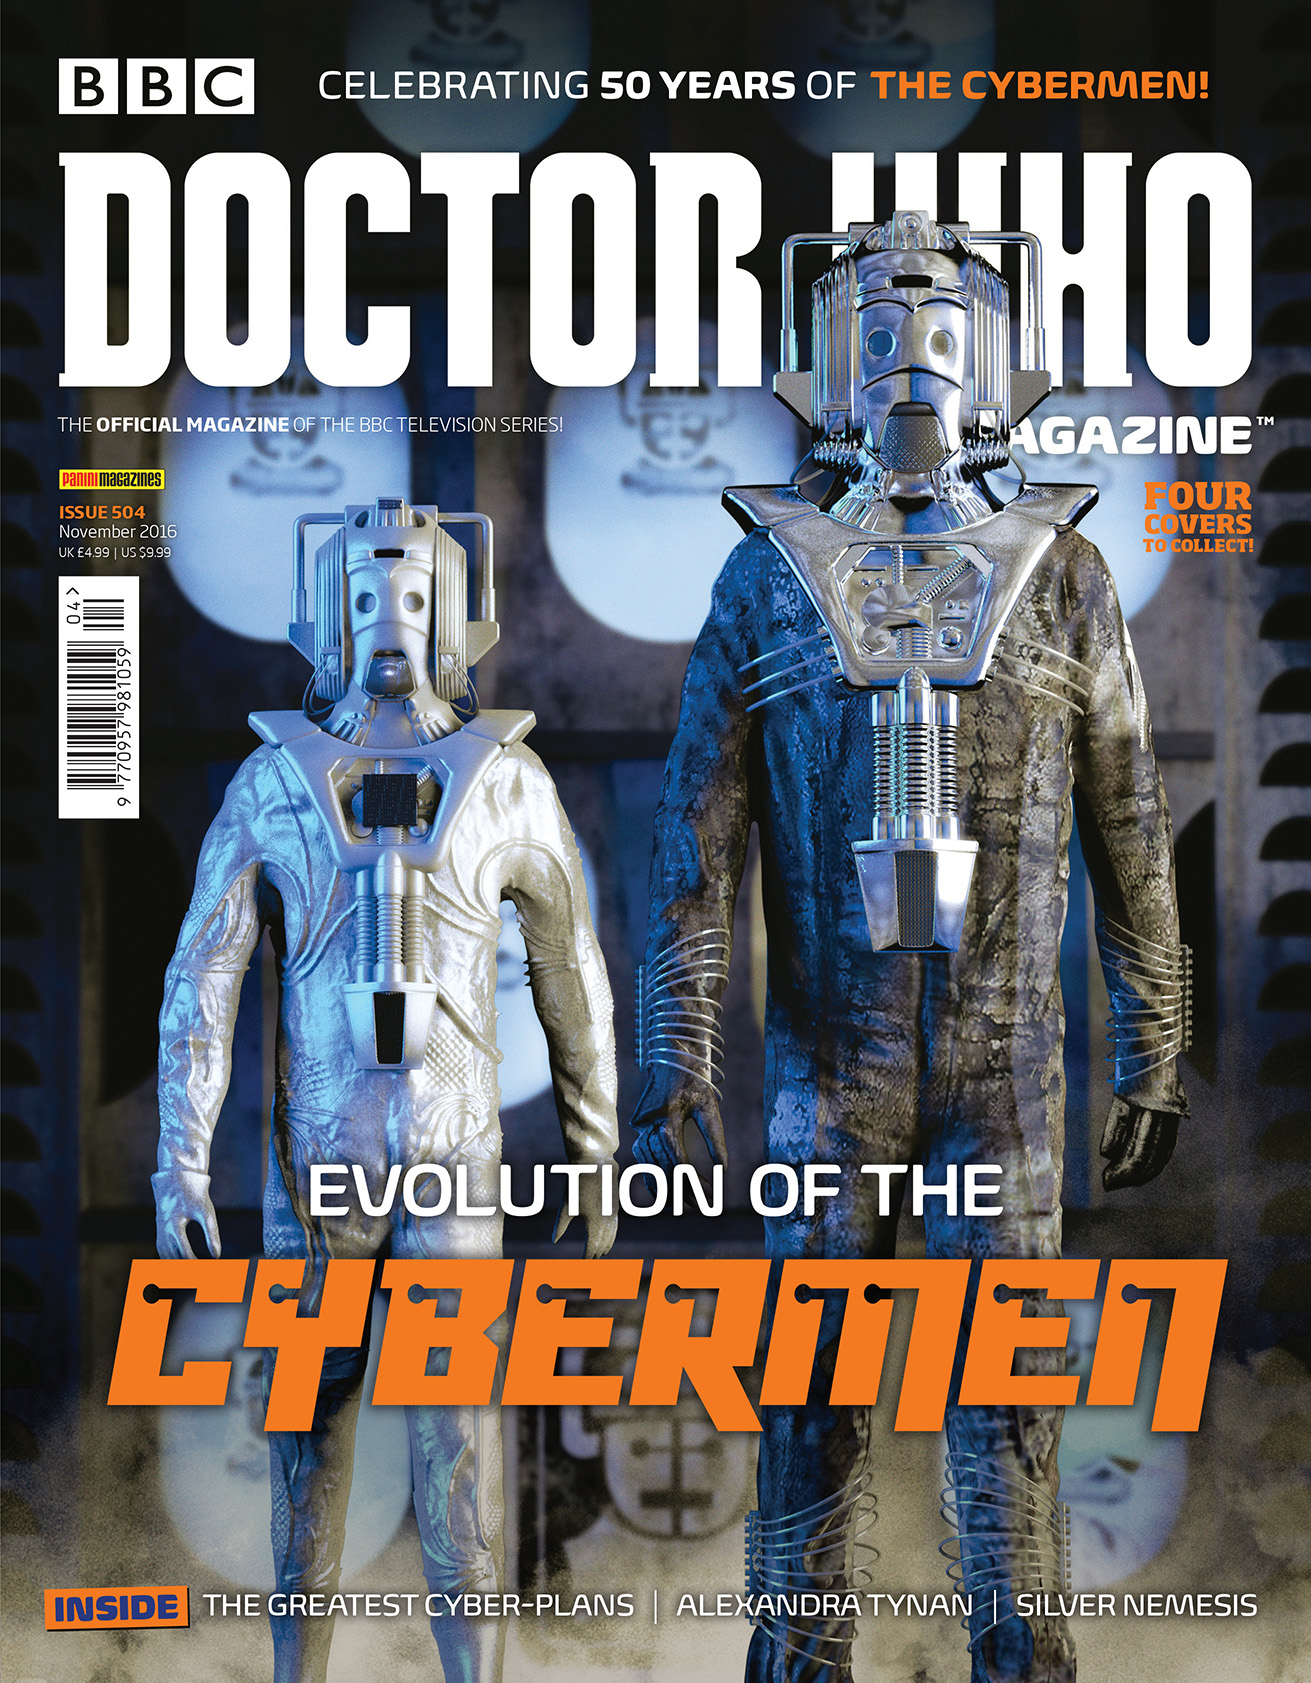 Doctor Who Magazine issue 504 (80s Cybermen) (Credit: DWM)